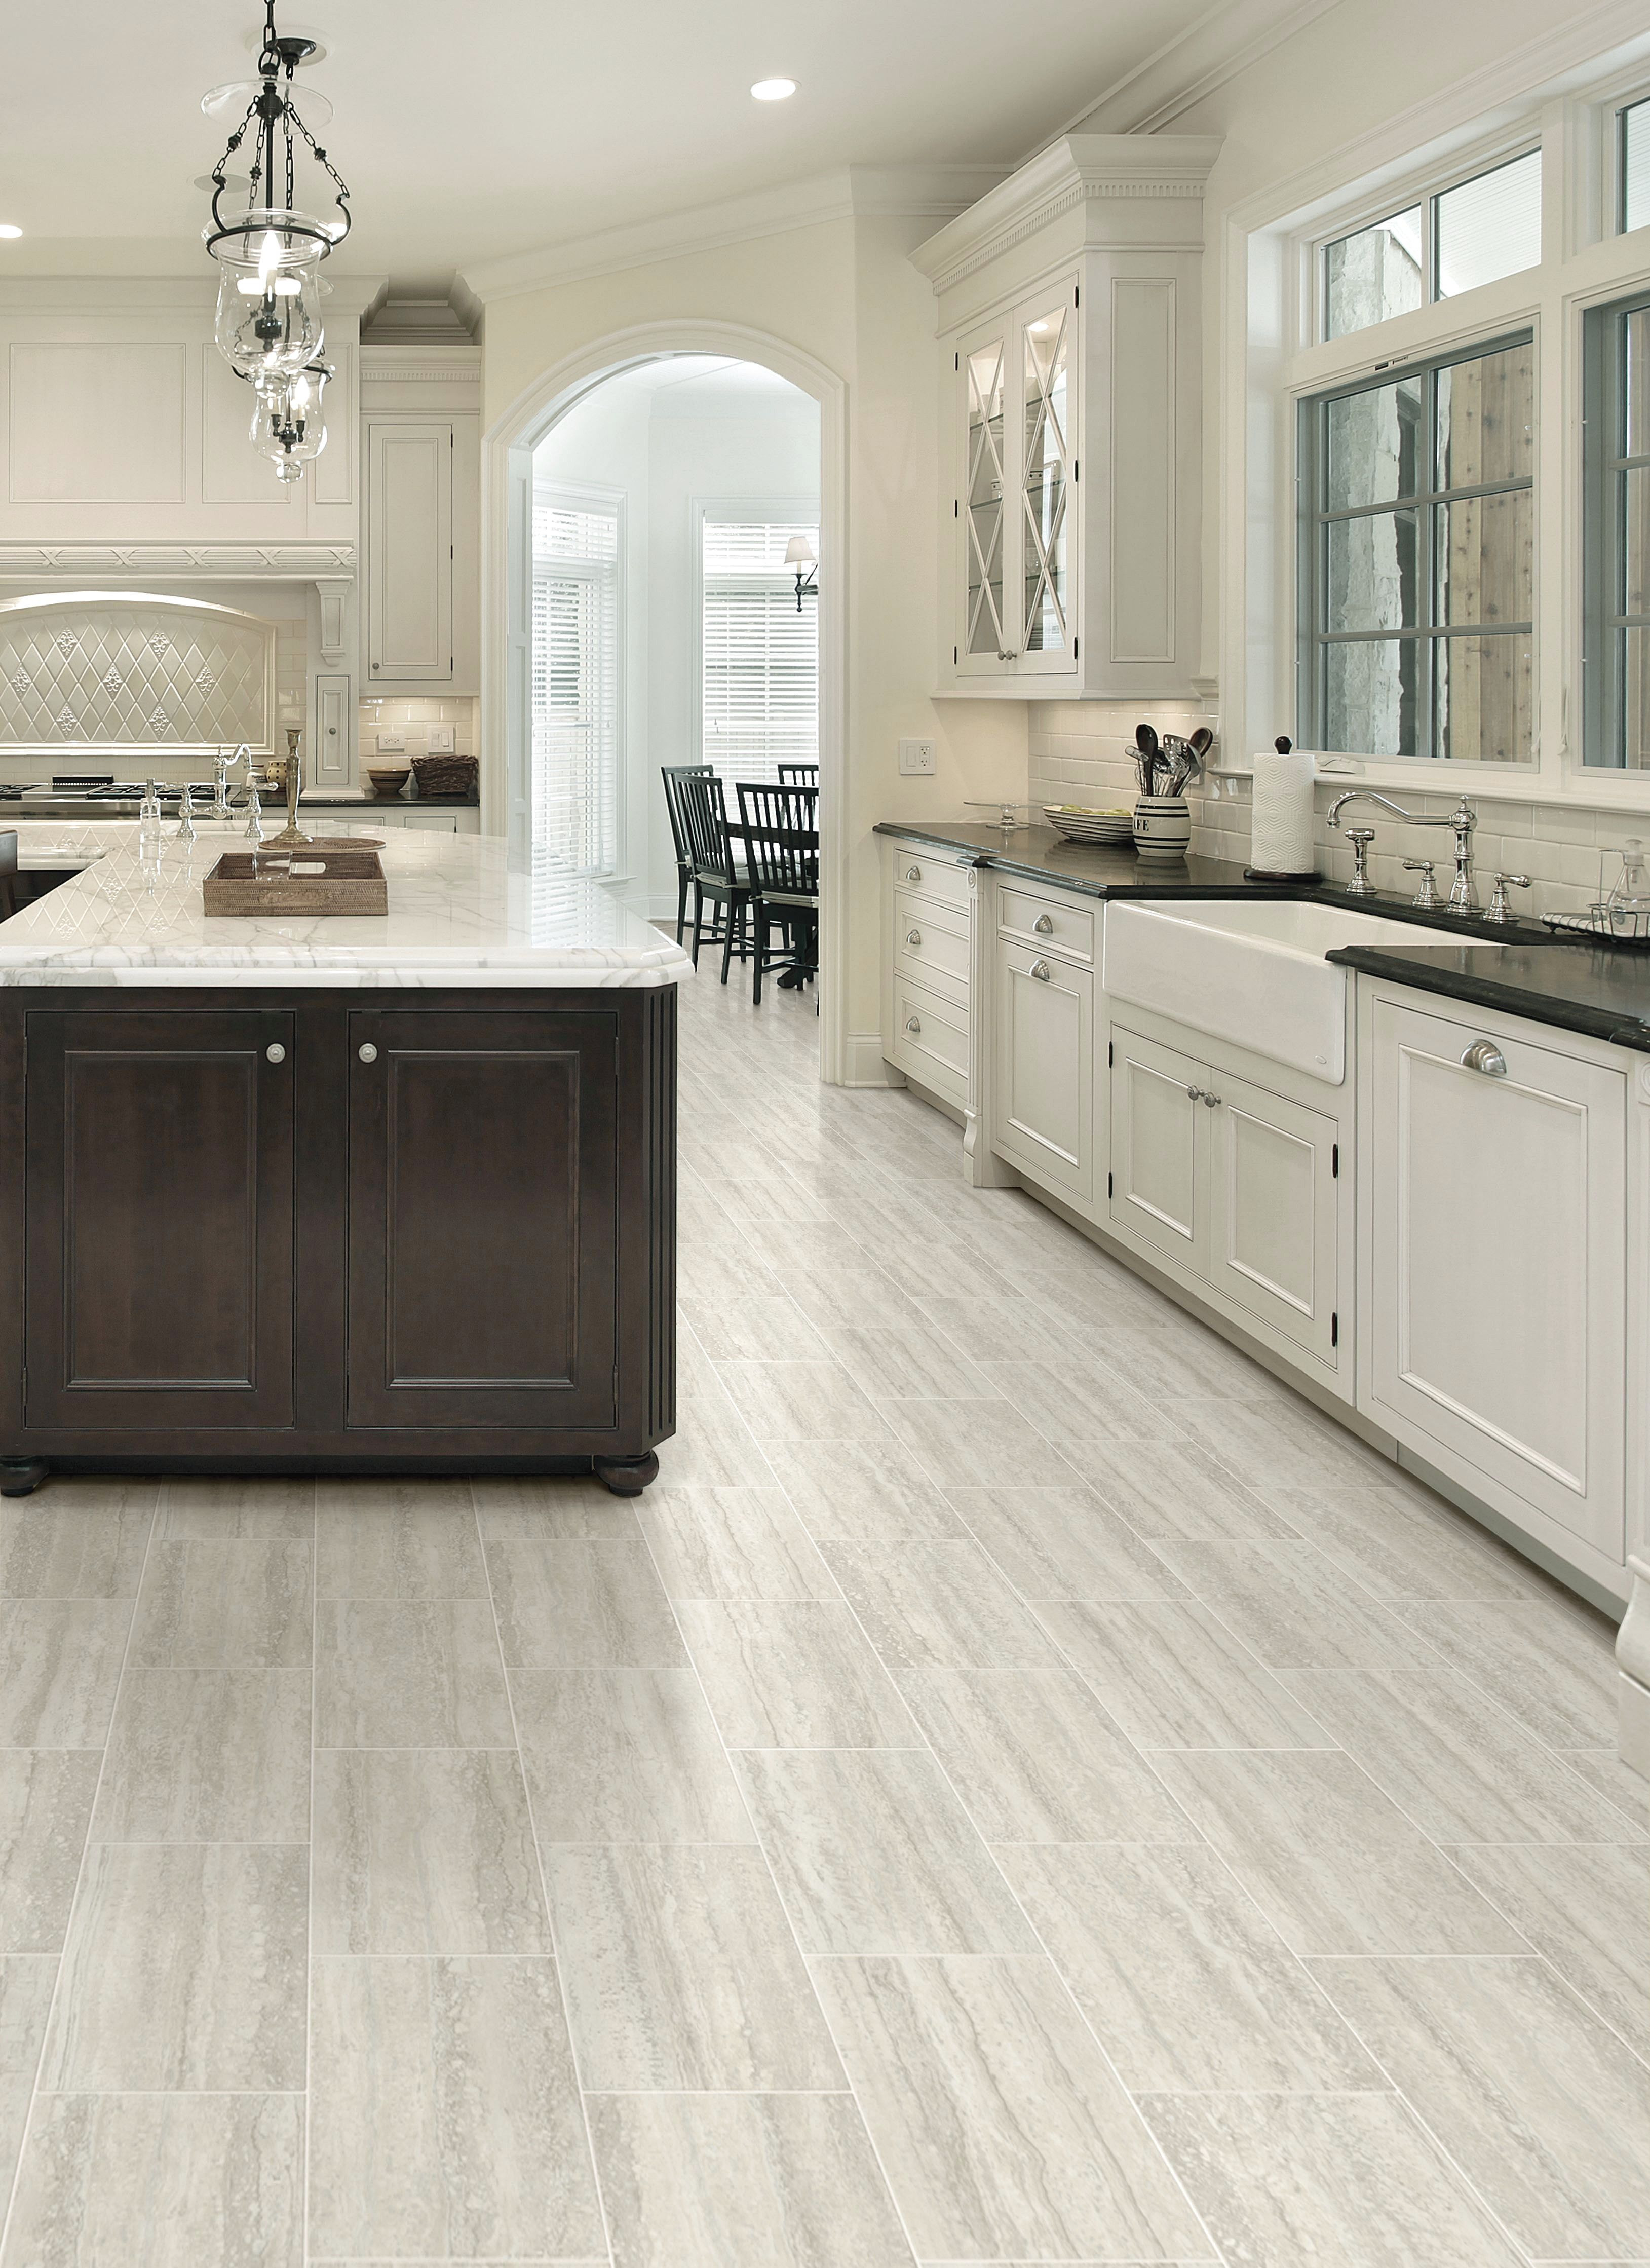 bamboo flooring cost vs hardwood cost of stone flooring cost all about kitchen in 2018 pinterest in stone flooring cost